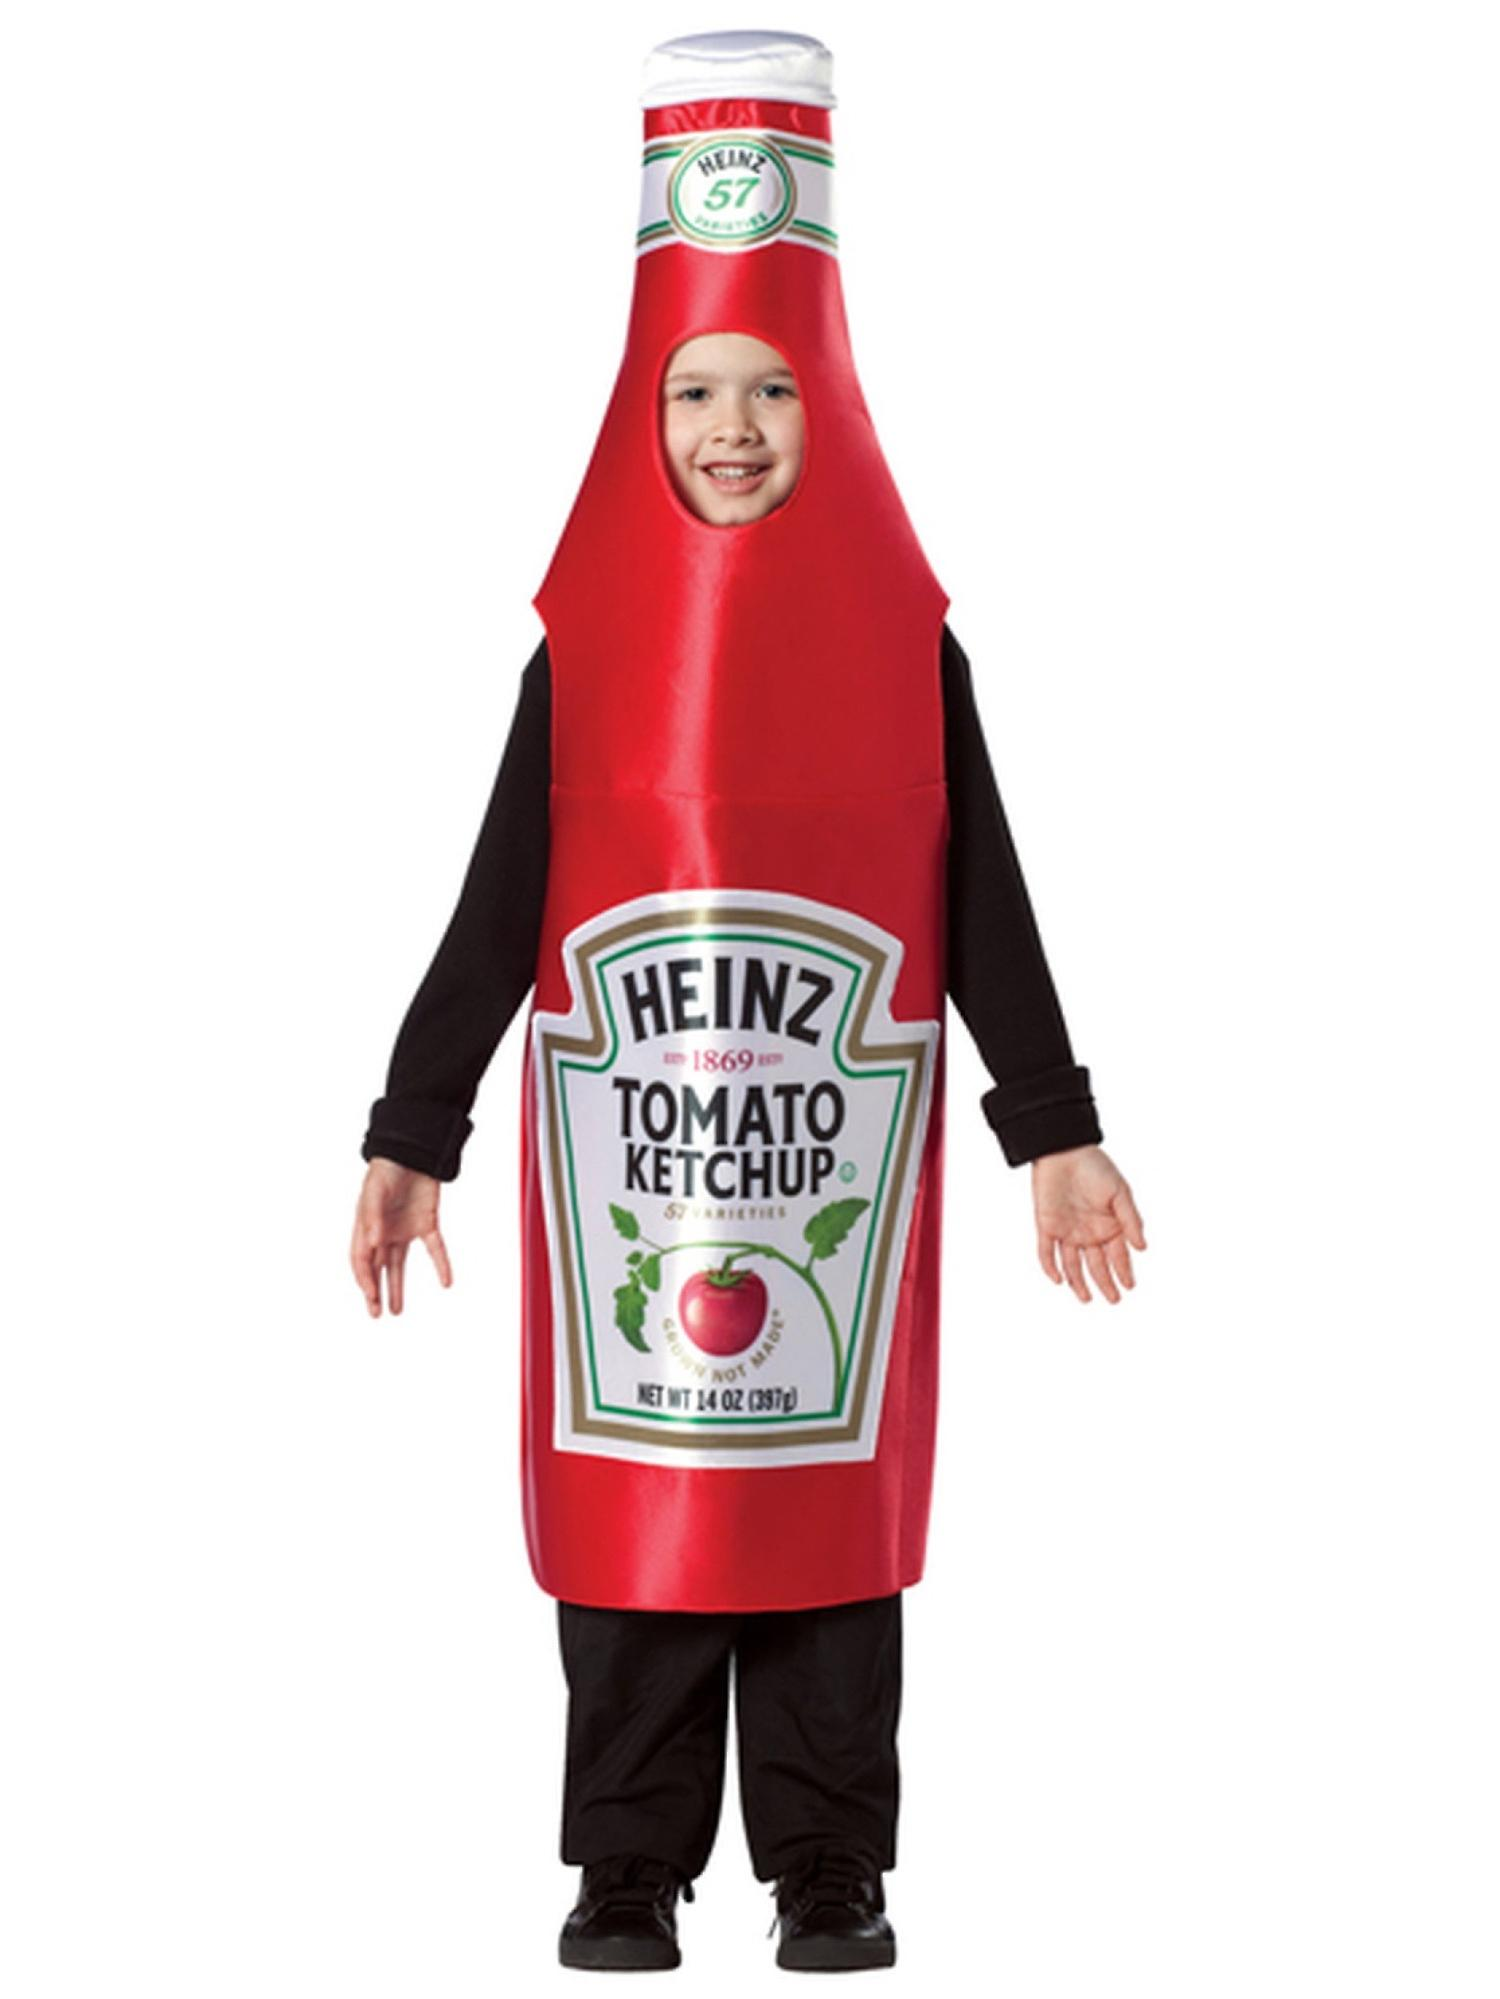 Heinz Ketchup Classic Bottle Red Tomato Sauce Condiment Child Boys Costume 7-10